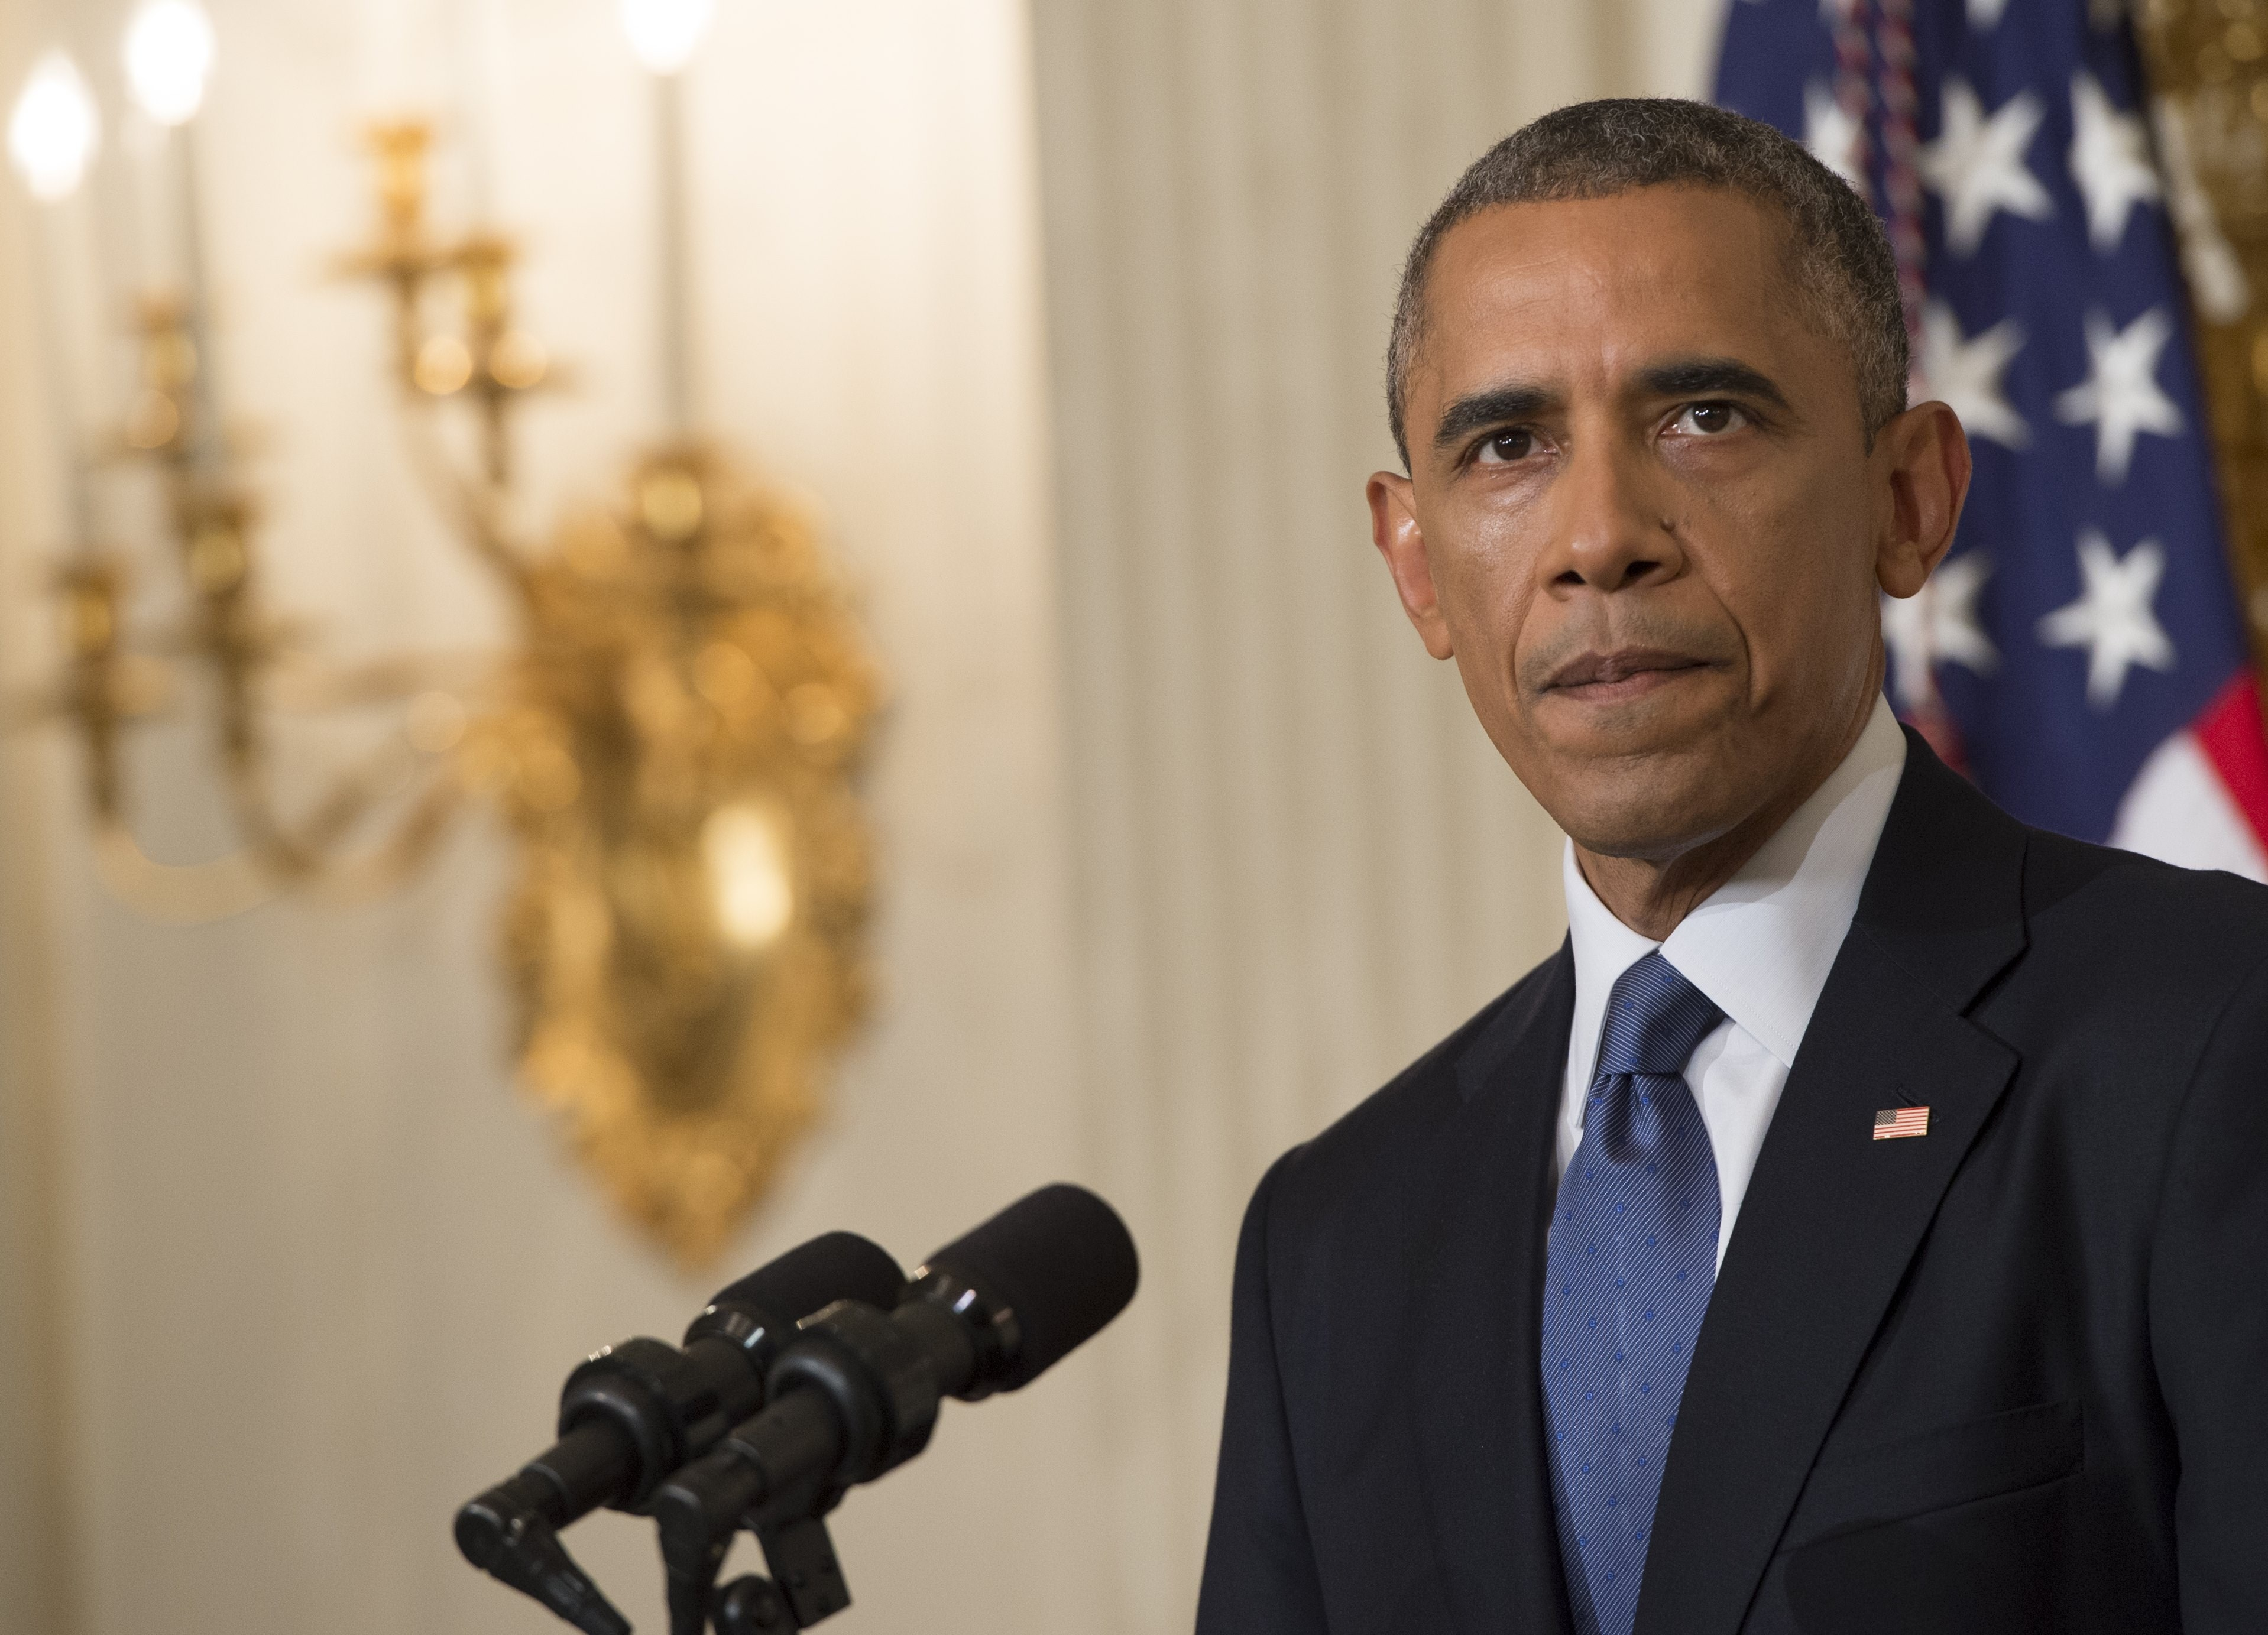 President Barack Obama speaks about the situation in Iraq in the State Dining Room at the White House in Washington, DC, August 7, 2014.